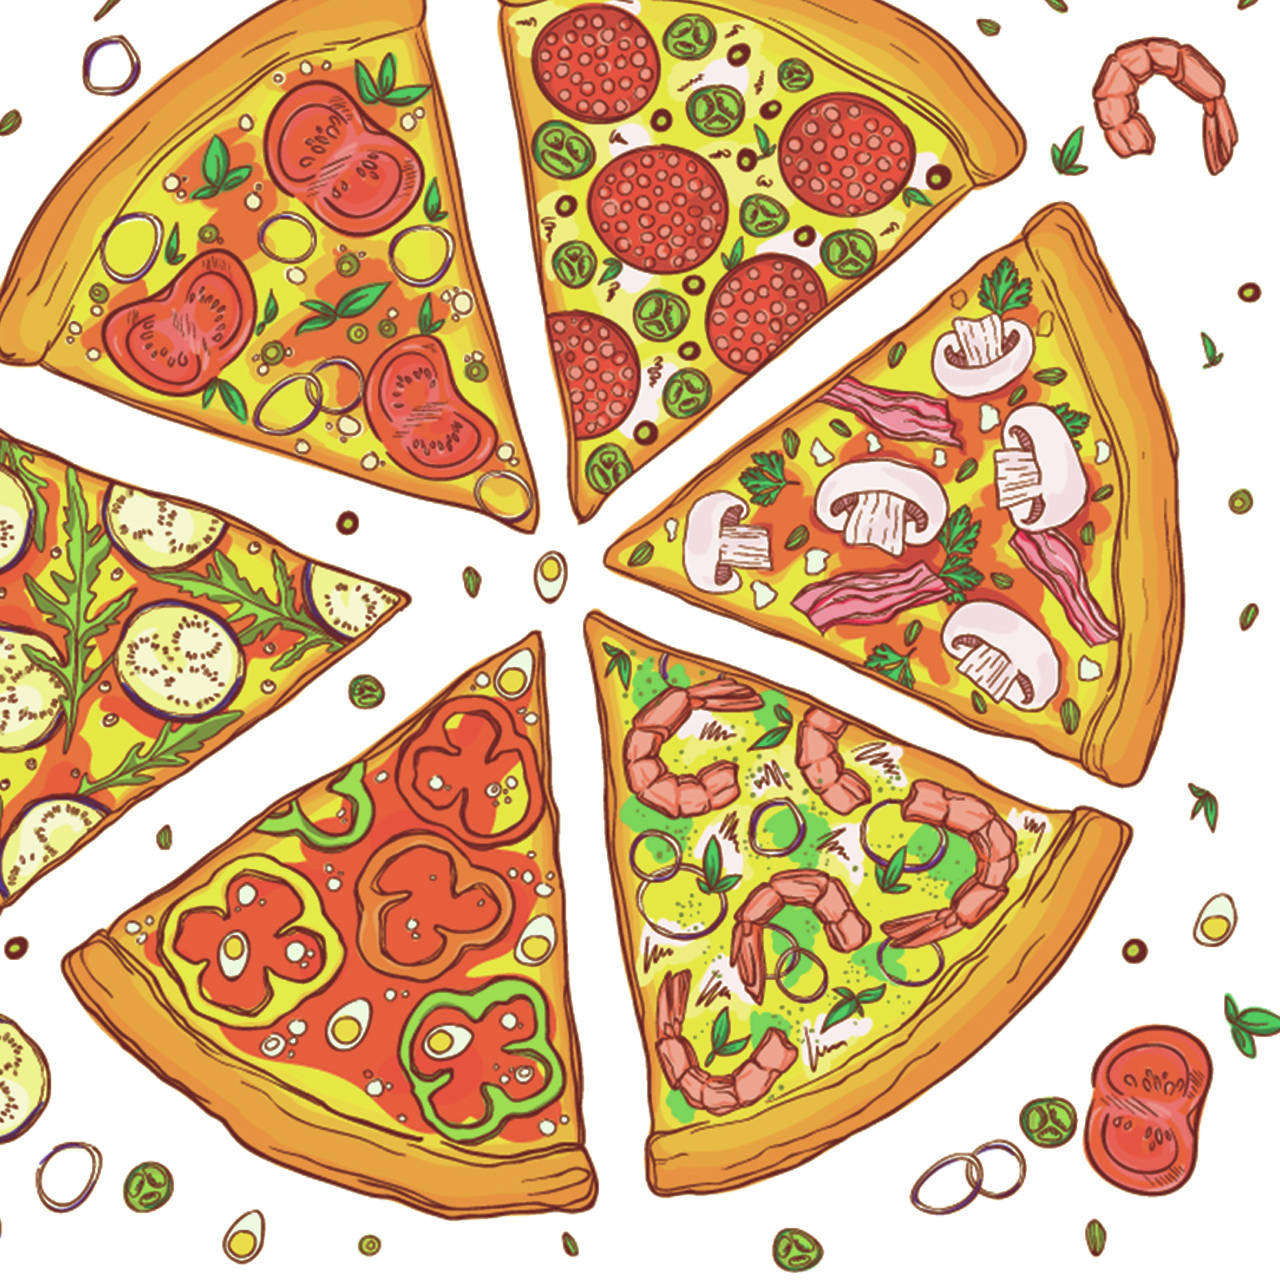 Pizza toppings, clockwise from the top: Jalapeno salami, mushroom bacon, prawn onion, egg pepper, arugula eggplant and tomato basil. (Getty Images)